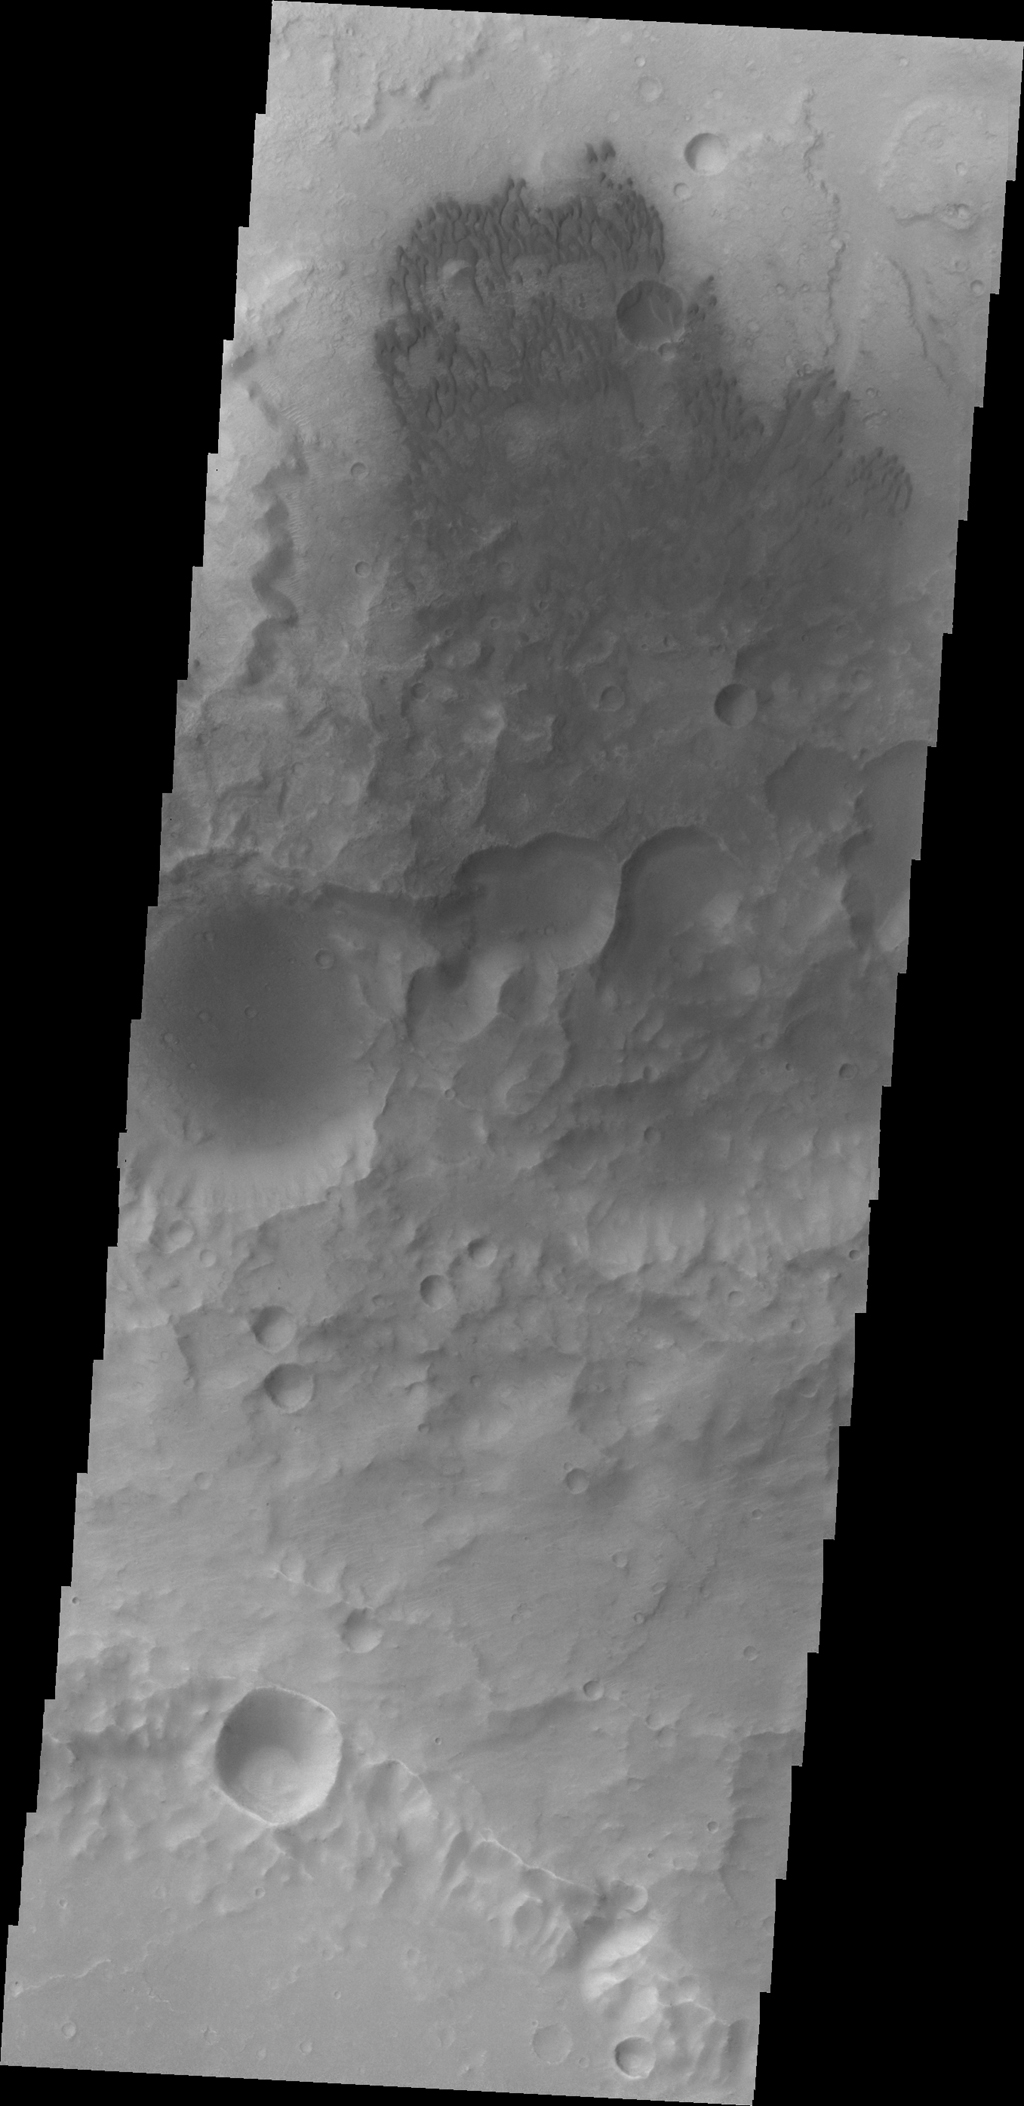 Small dunes are located on the floor of this unnamed crater in Terra Cimmeria as seen by NASA's 2001 Mars Odyssey spacecraft.